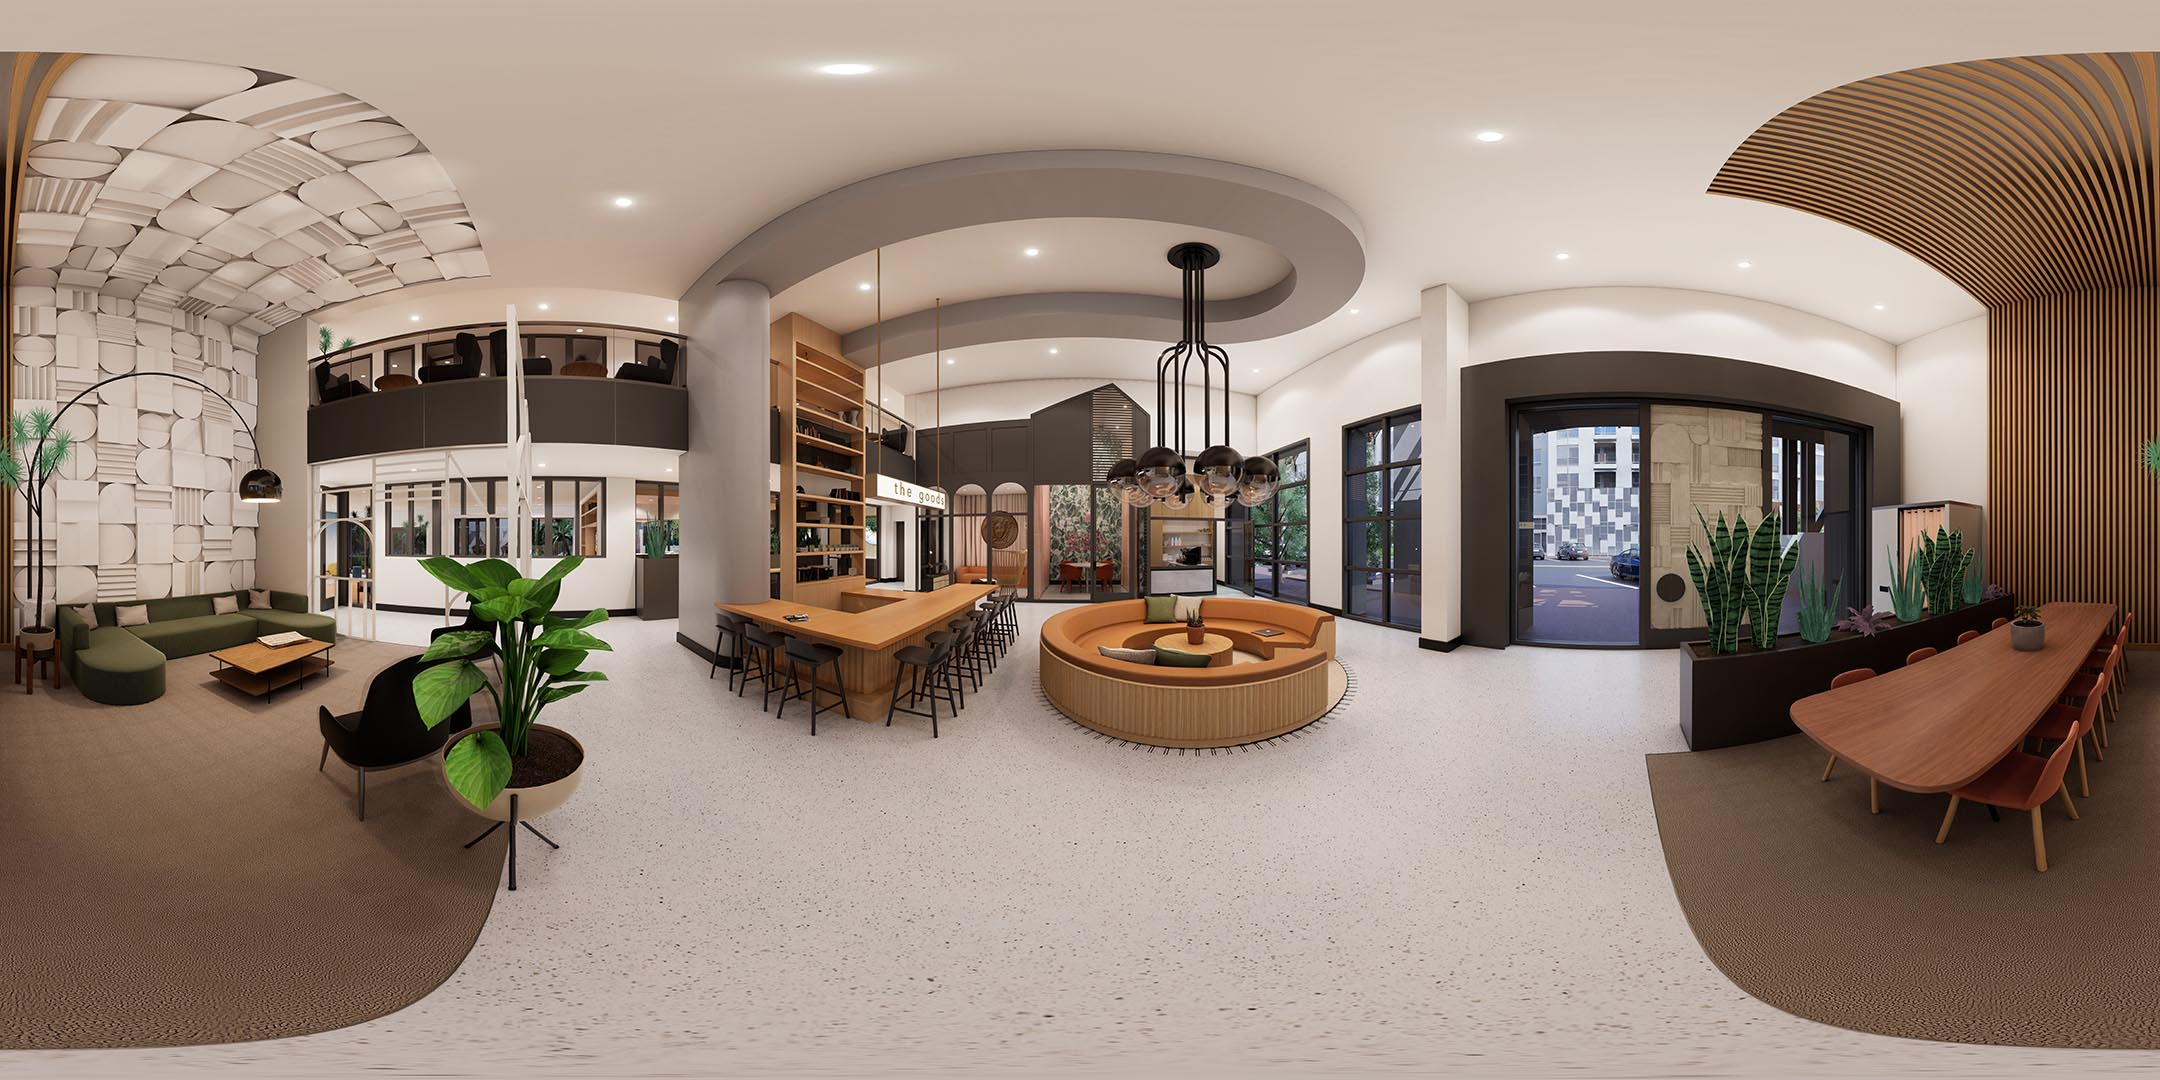 A 360 rendering of an apartment leasing lobby with 2 story ceilings